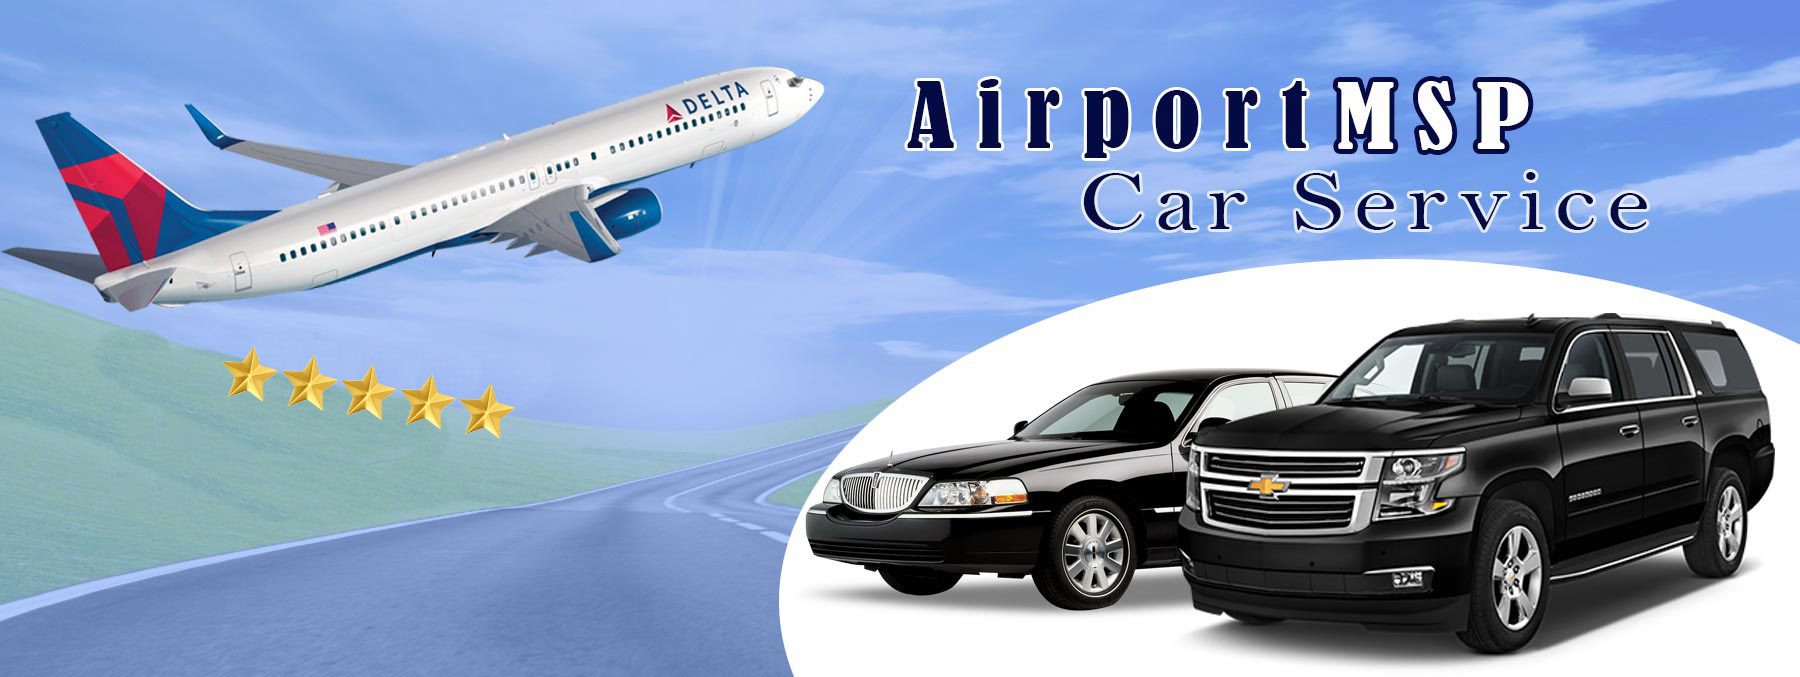 airport-msp-car-service